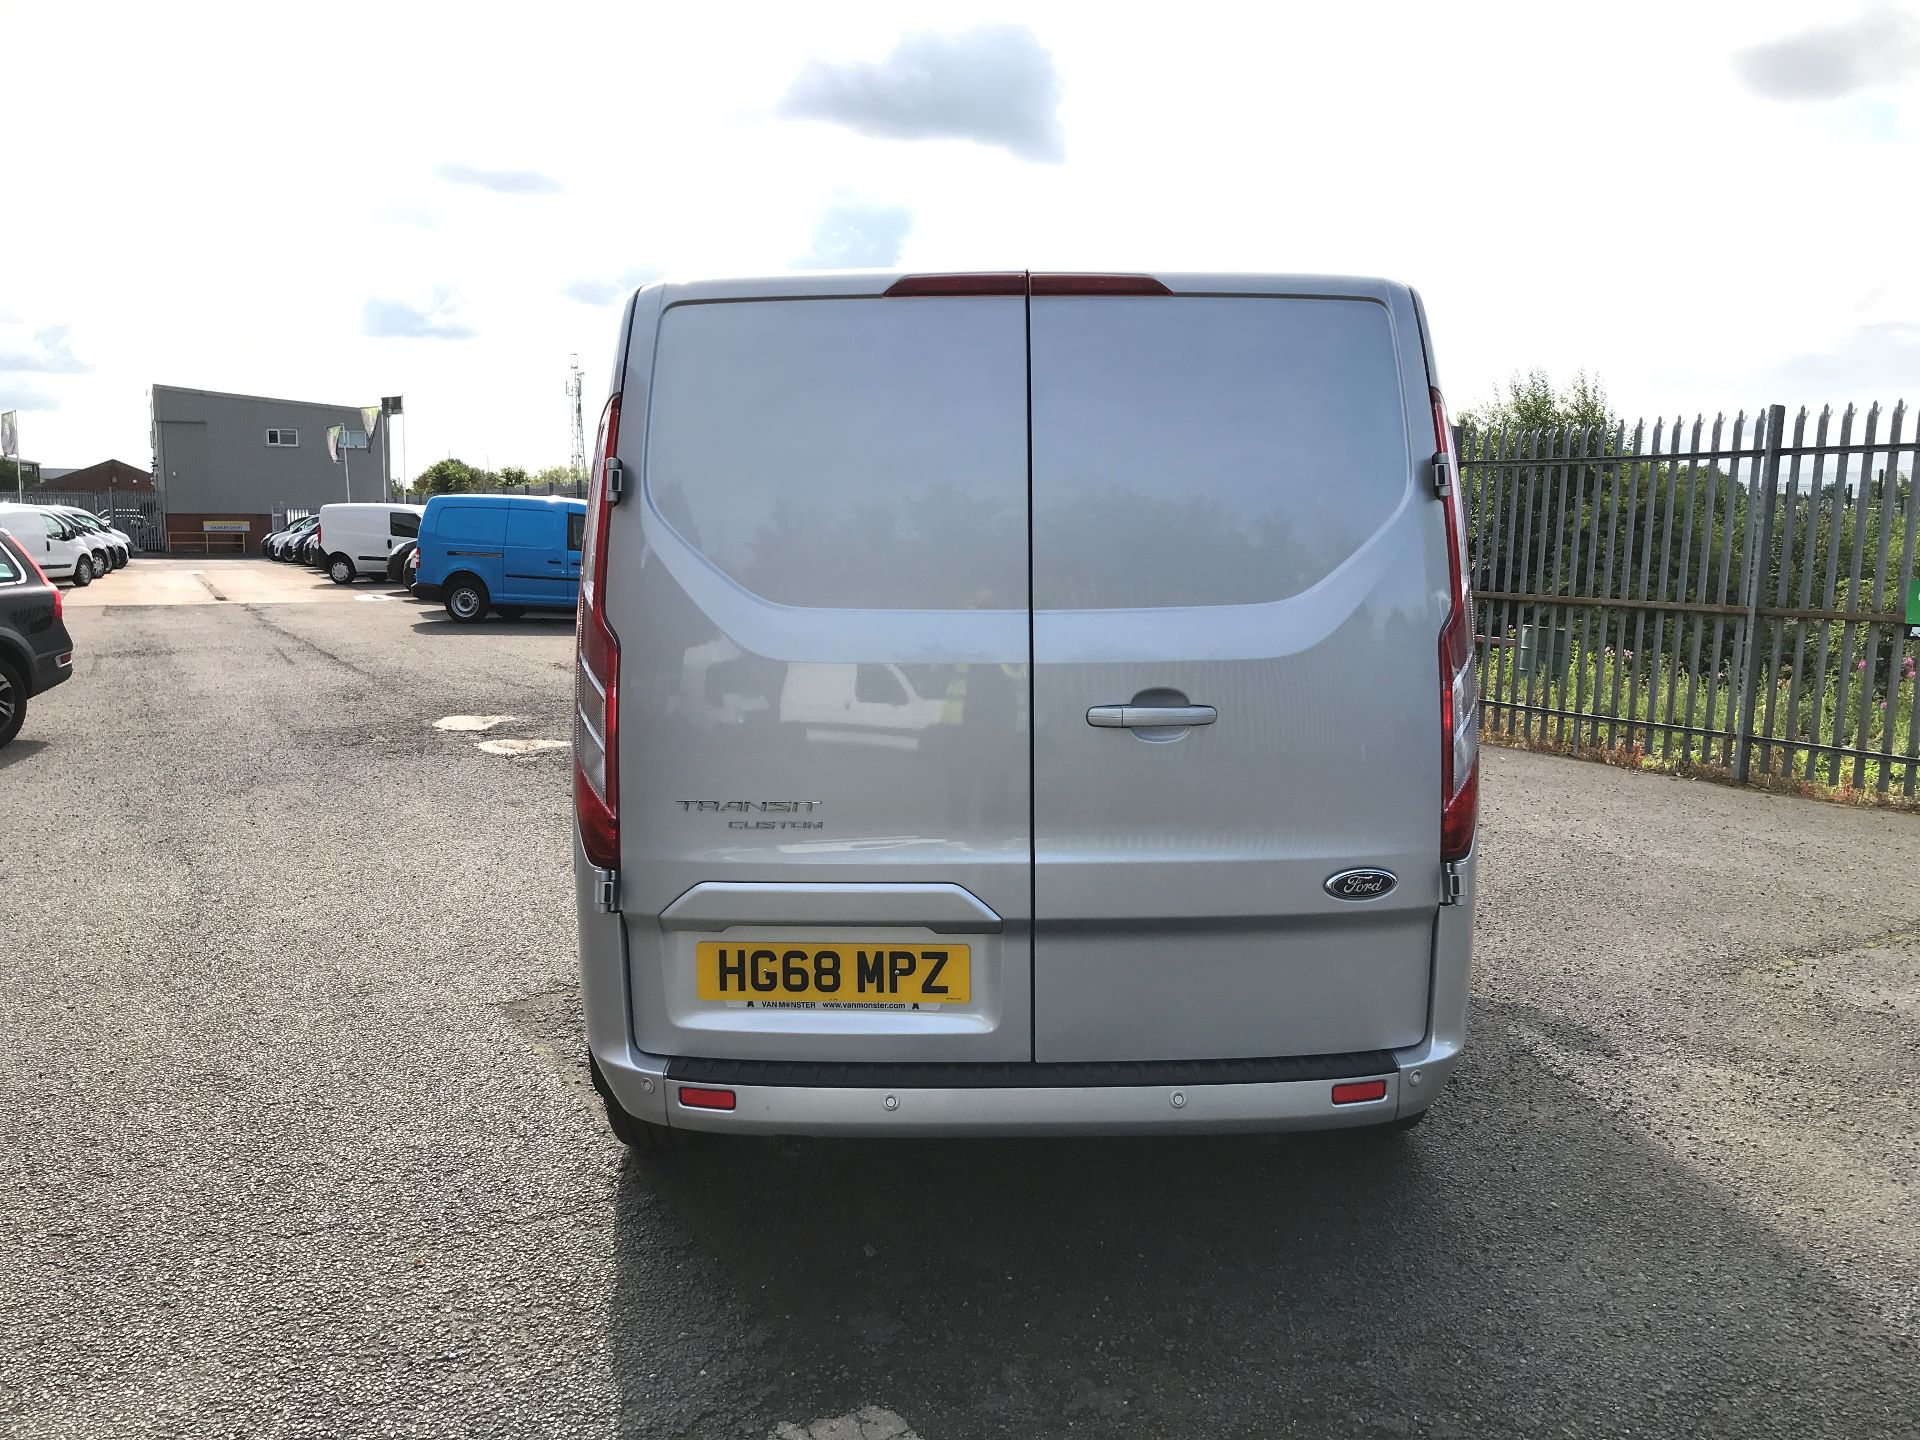 2018 Ford Transit Custom 320 L1 2.0TDCI 130PS LOW ROOF DOUBLE CAB LIMITED EURO 6 (HG68MPZ) Image 9